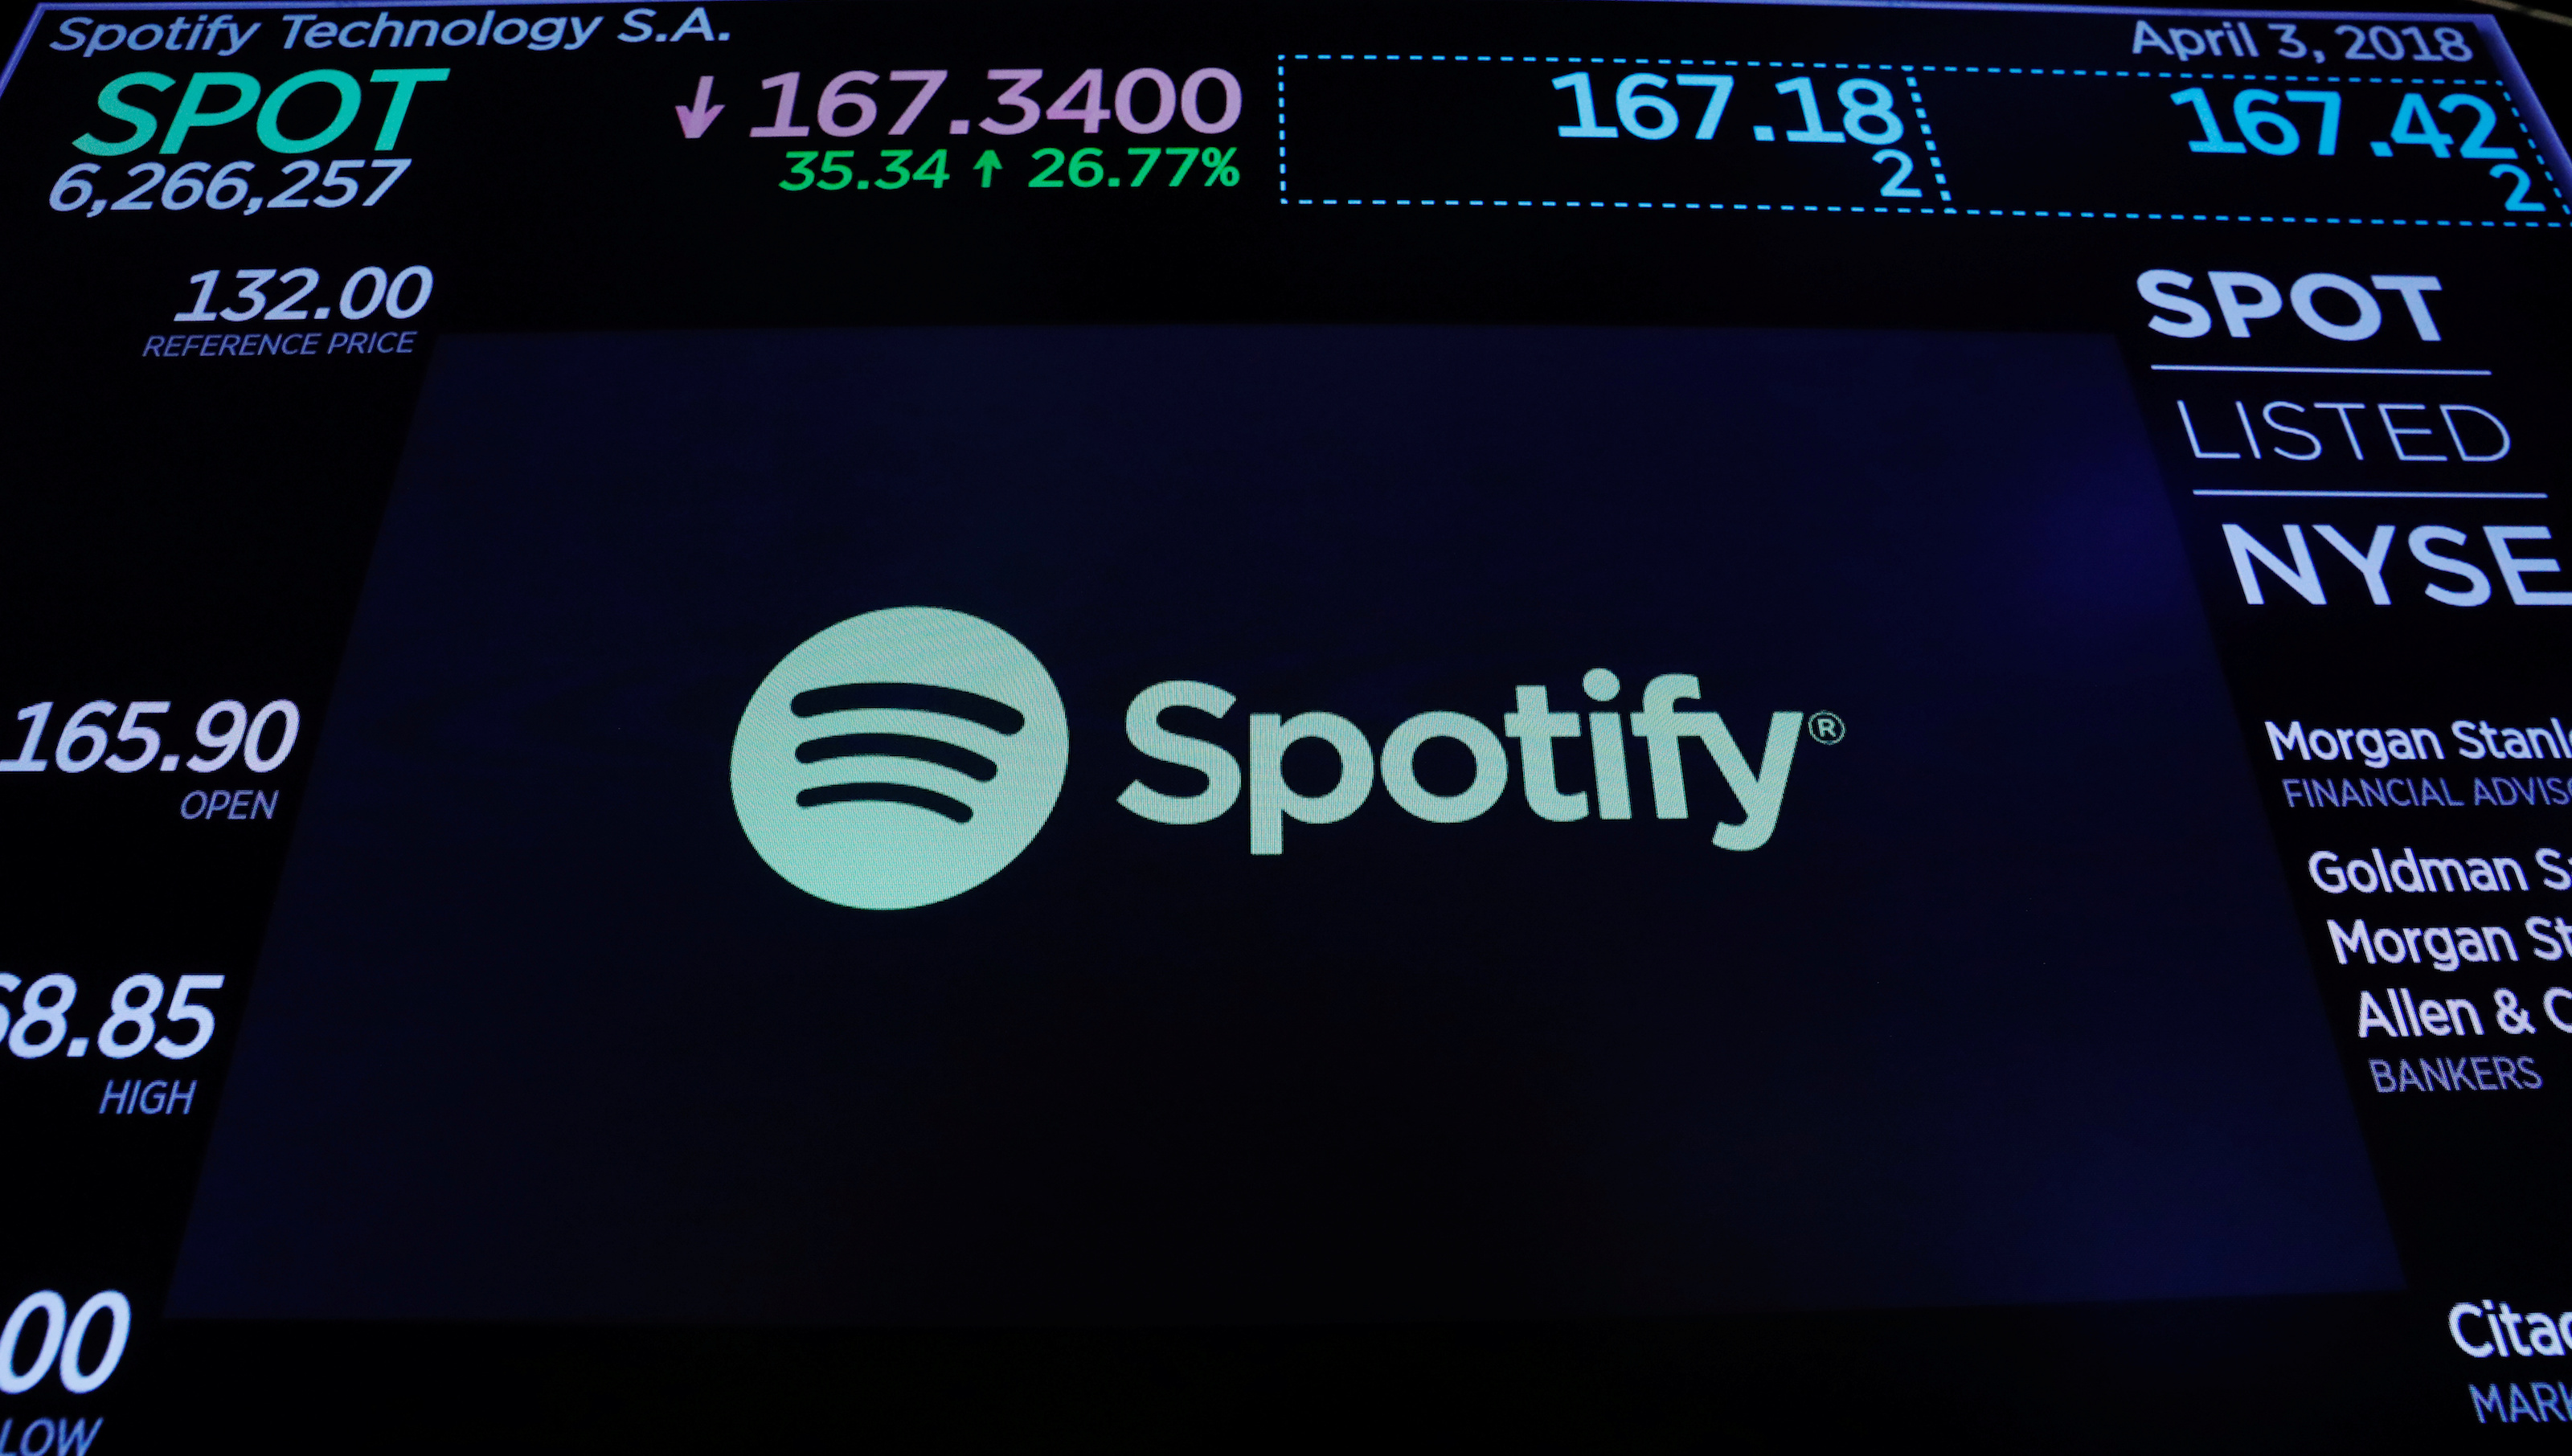 The Spotify logo is displayed after the stock began selling as a direct listing on the floor of the New York Stock Exchange in New York, U.S., April 3, 2018.  REUTERS/Lucas Jackson - RC199AA13920